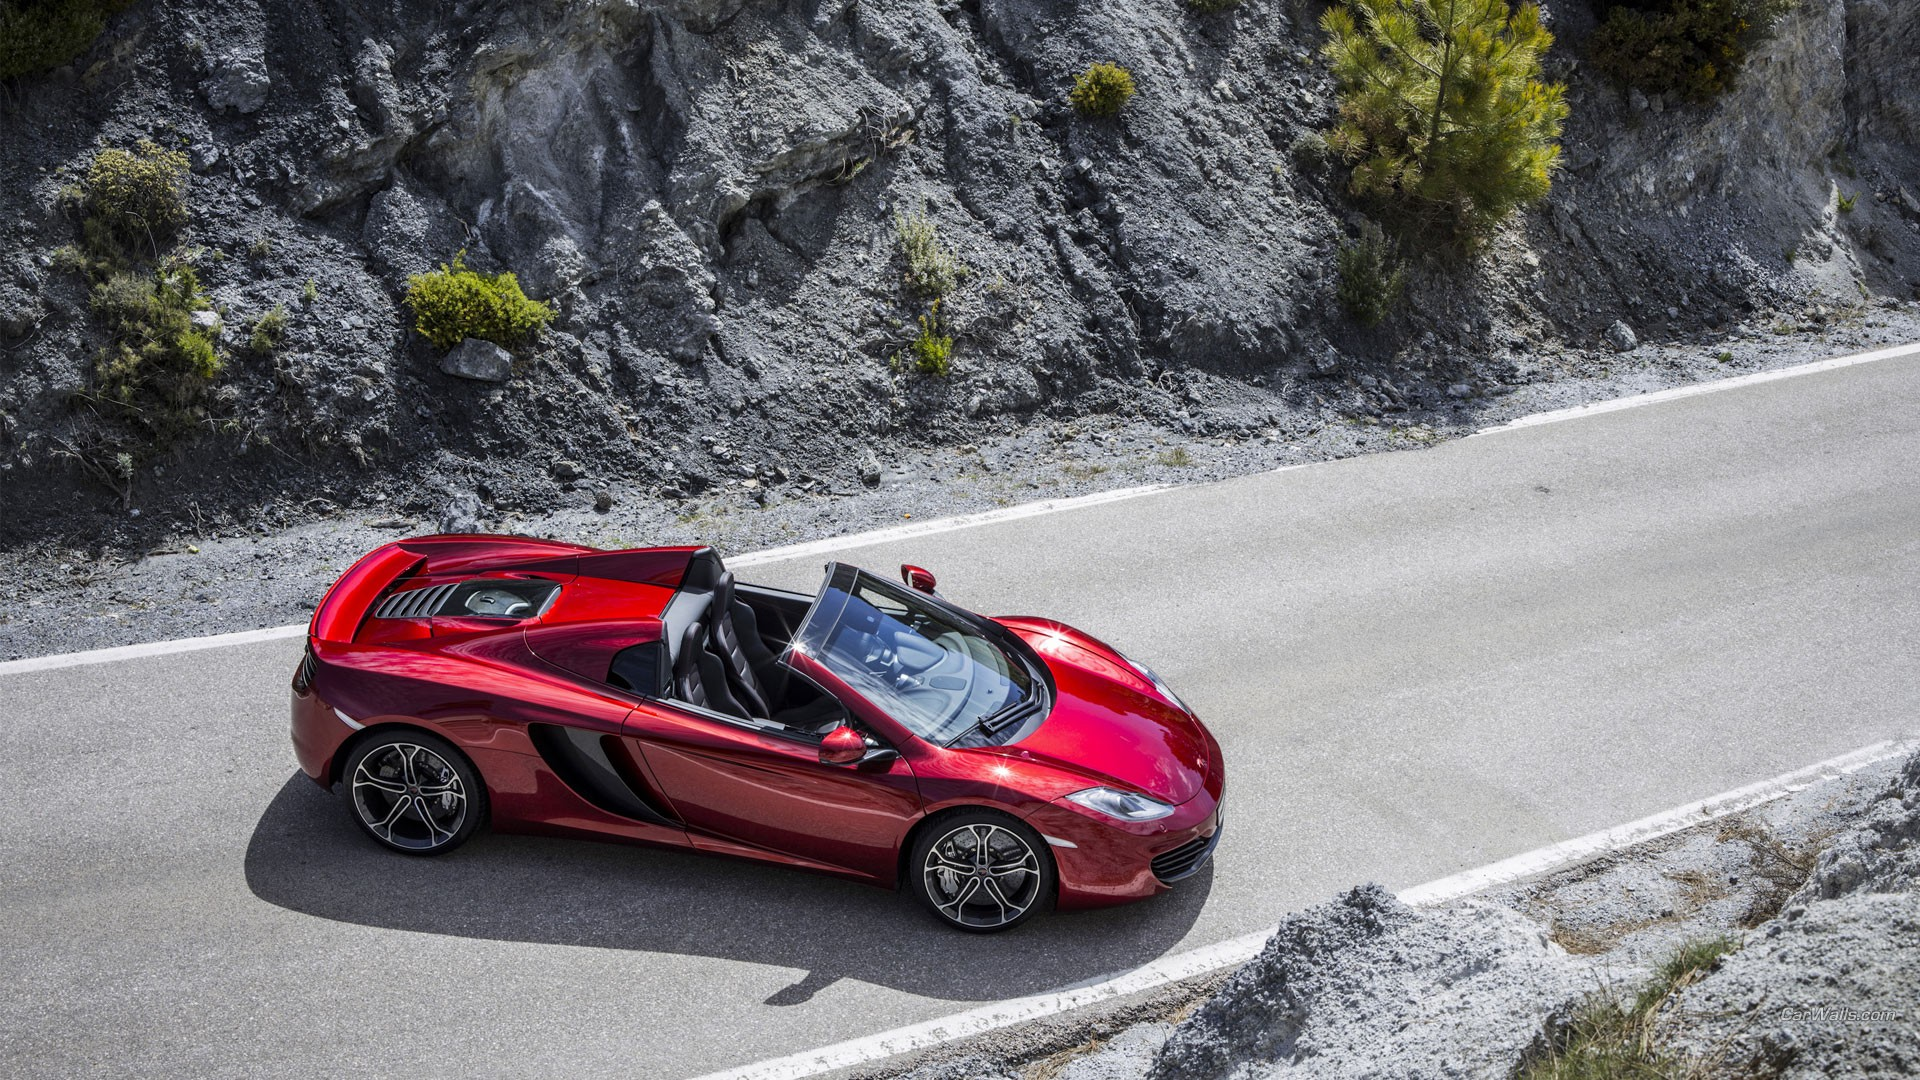 Daily wallpaper 2013 mclaren mp4 12c spyder i like to waste my time publicscrutiny Choice Image